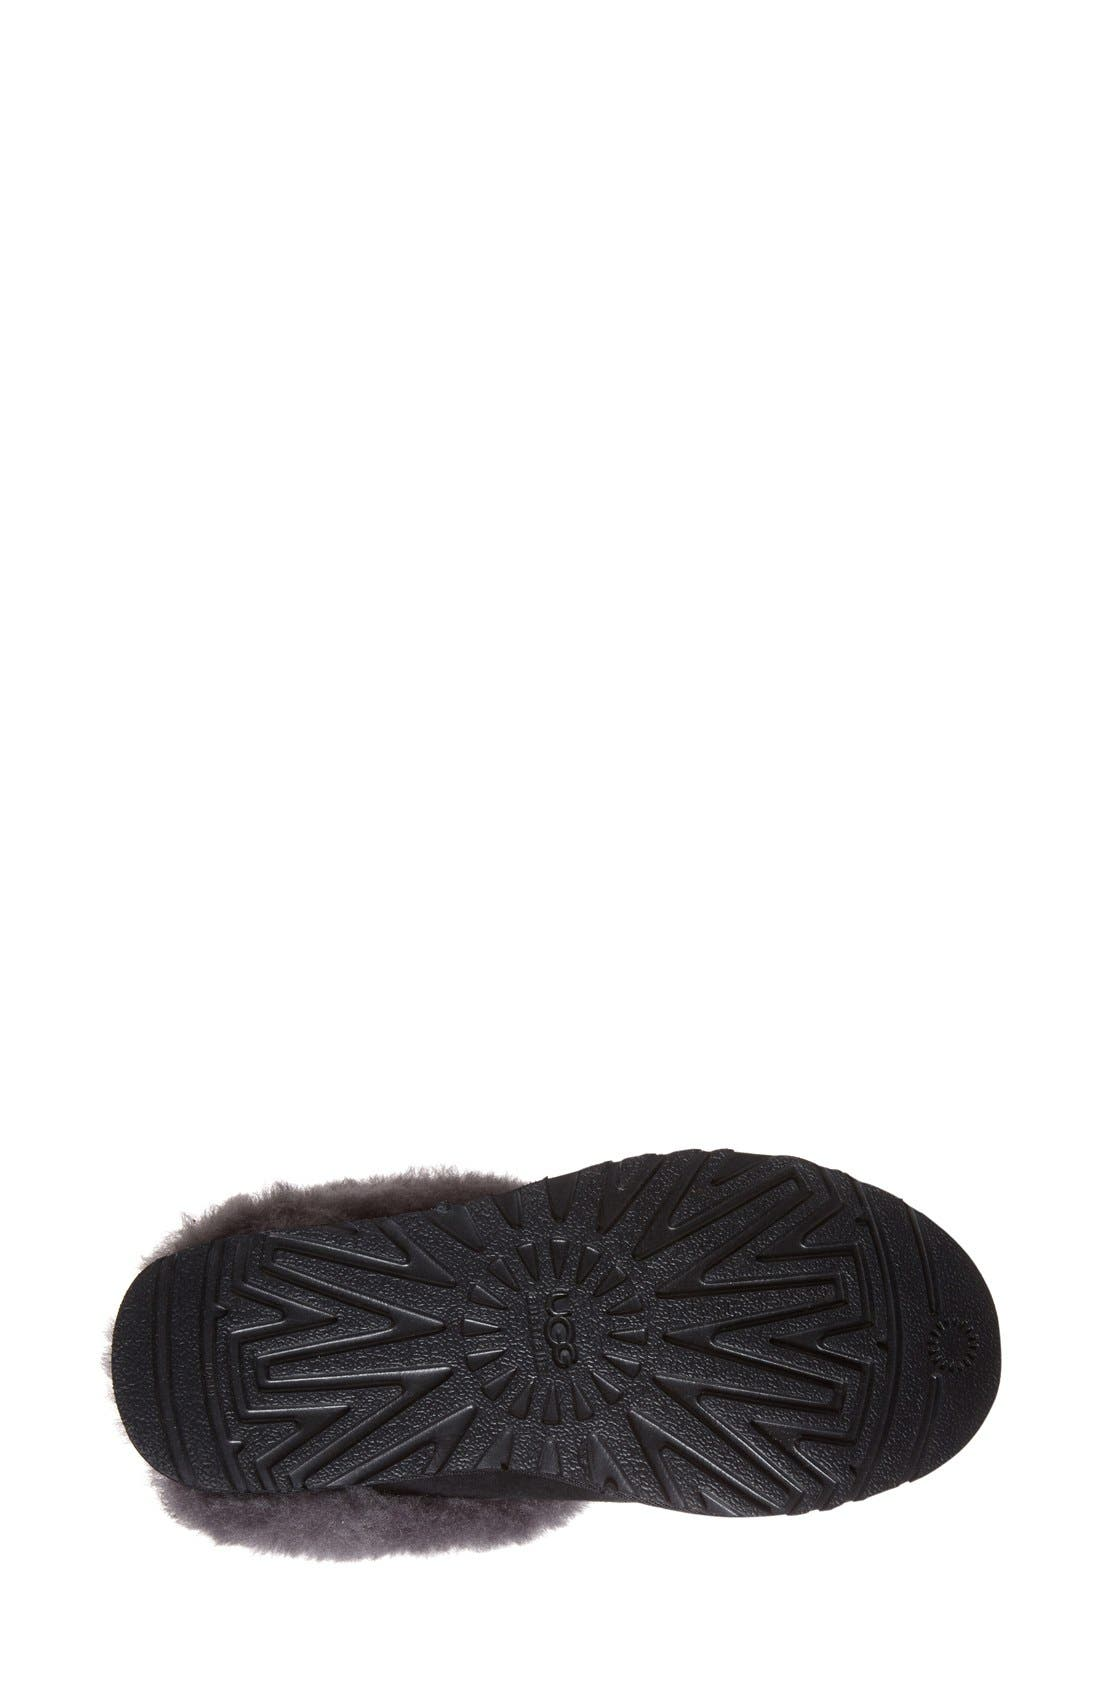 'Cluggette' Genuine Shearling Indoor/Outdoor Slipper,                             Alternate thumbnail 2, color,                             001